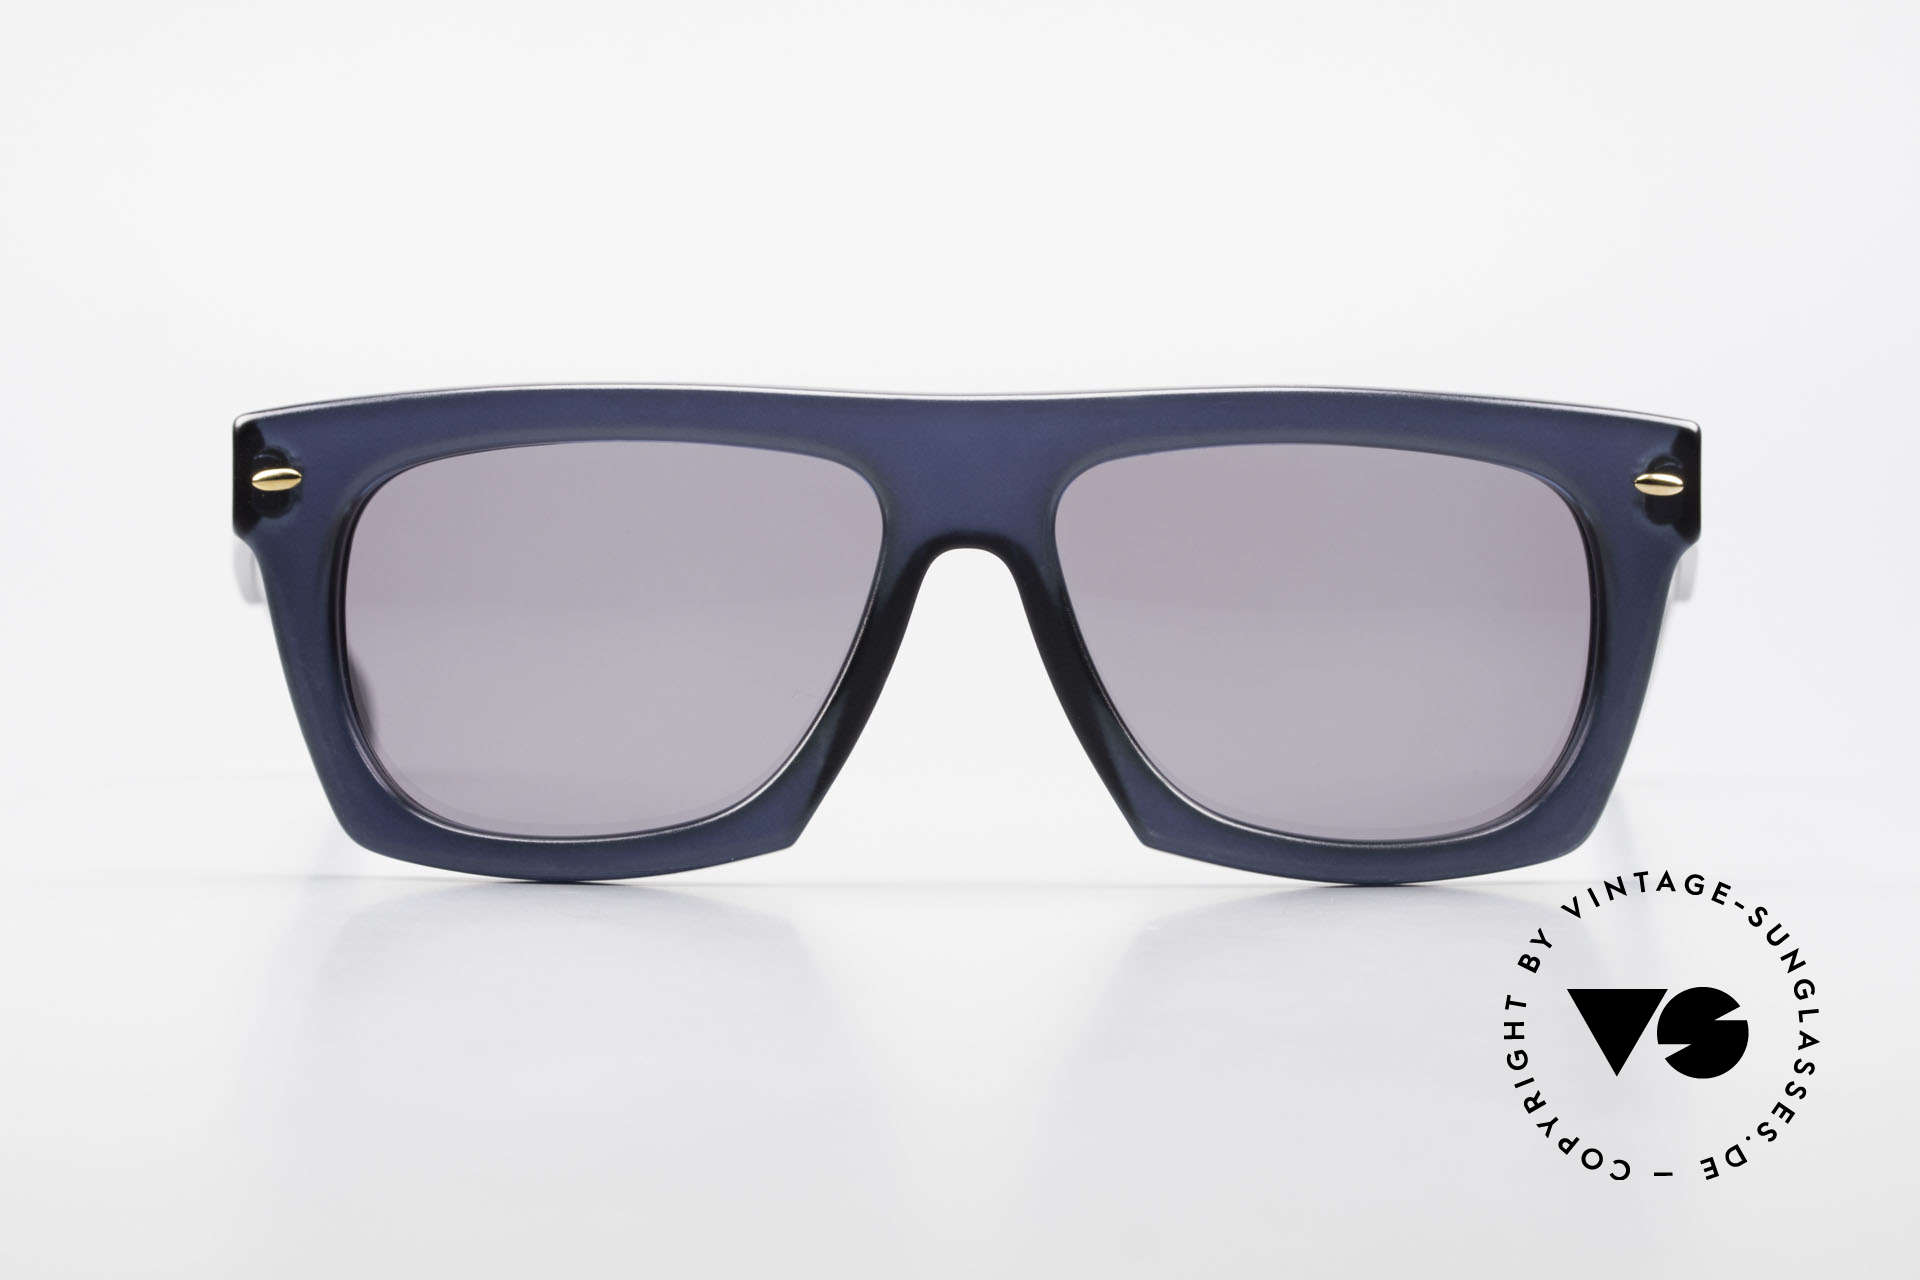 Paloma Picasso 1460 90's Original Designer Shades, Paloma is the youngest daughter of Pablo Picasso, Made for Men and Women